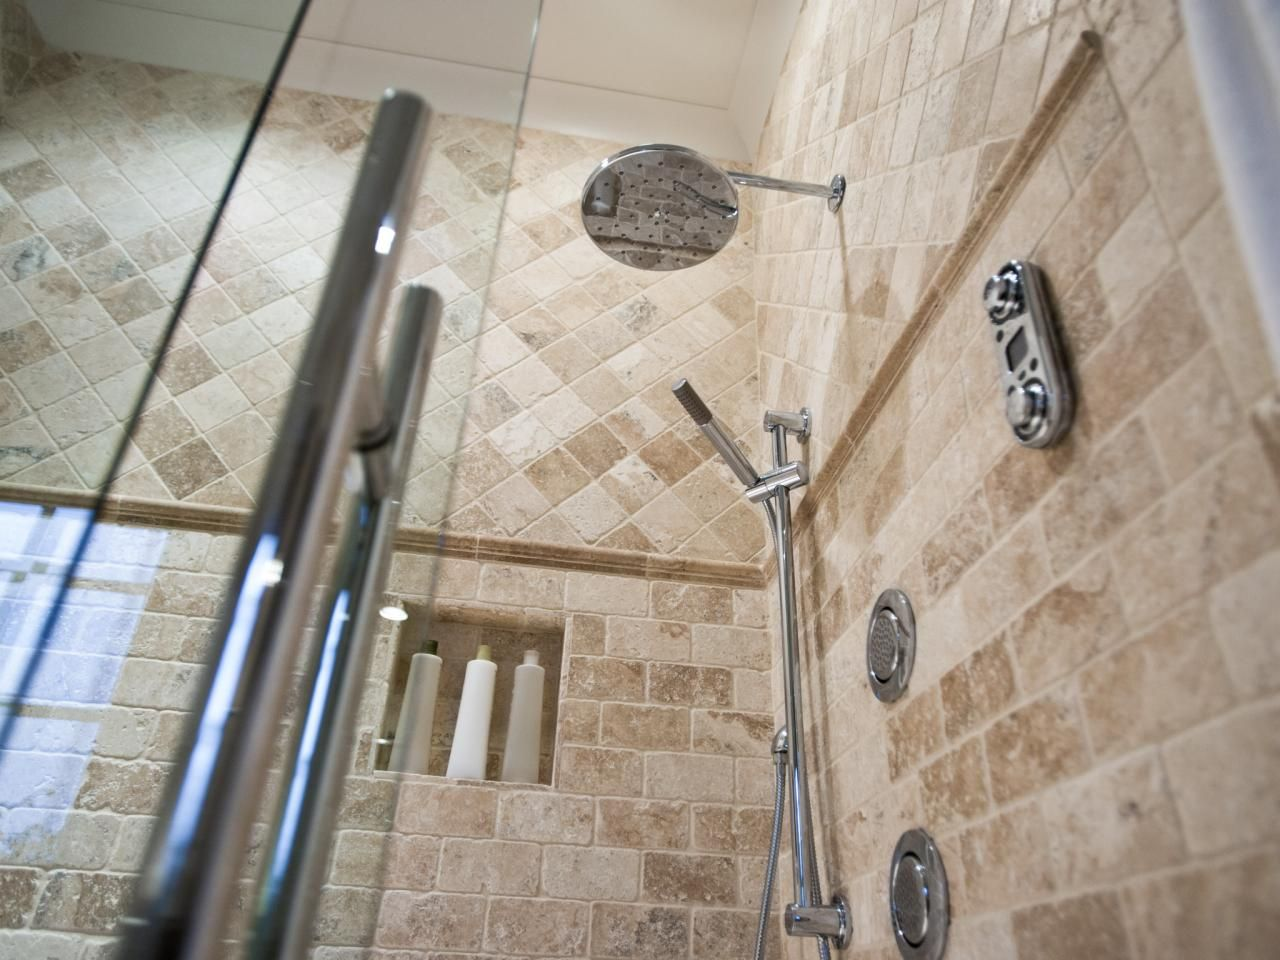 Master Bathroom Pictures From HGTV Smart Home 2014 | Waterfall ...